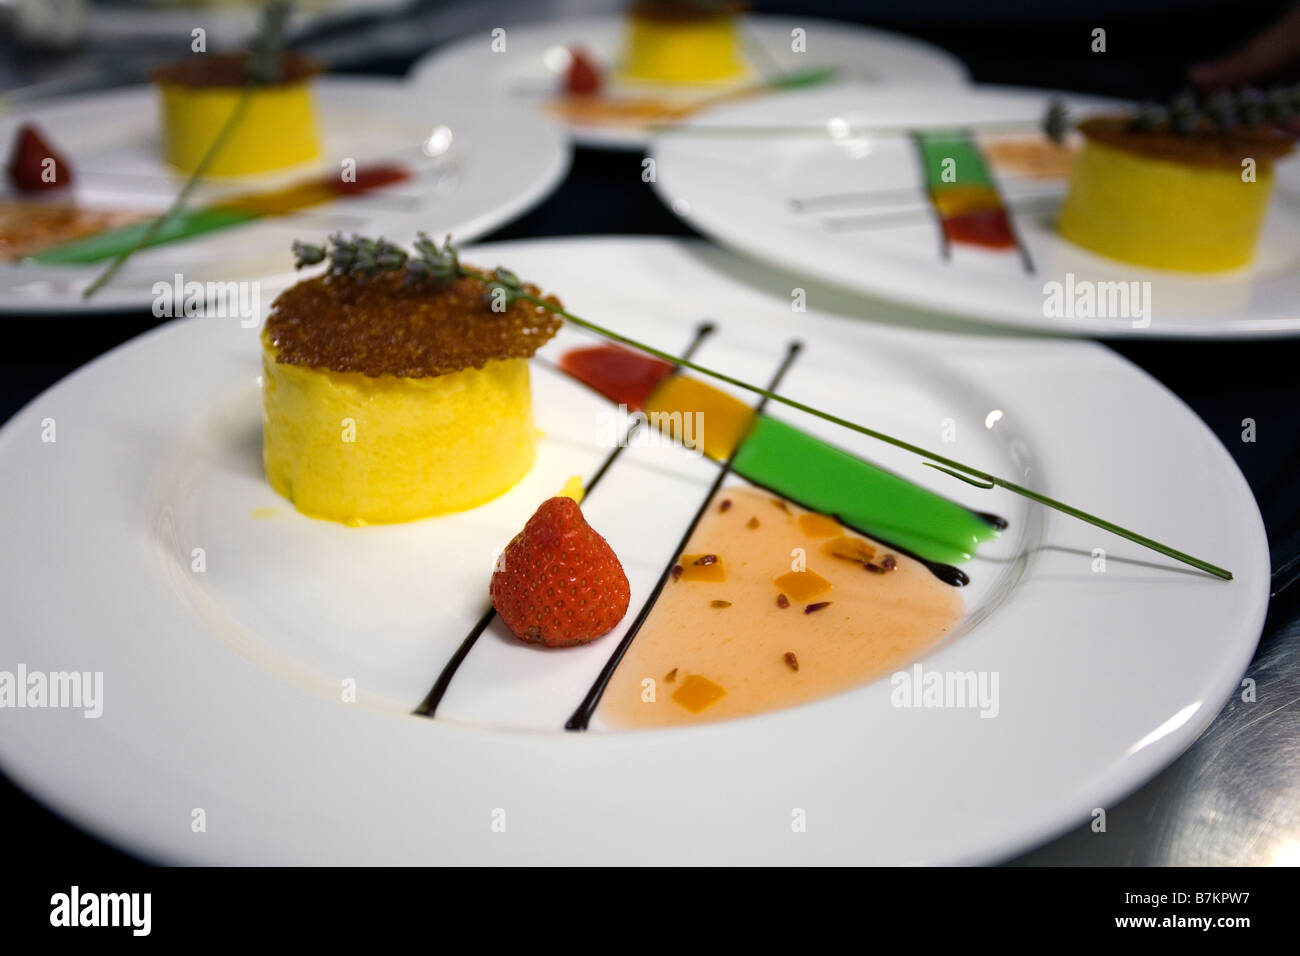 Related keywords suggestions for nouvelle cuisine for Nouvelle cuisine